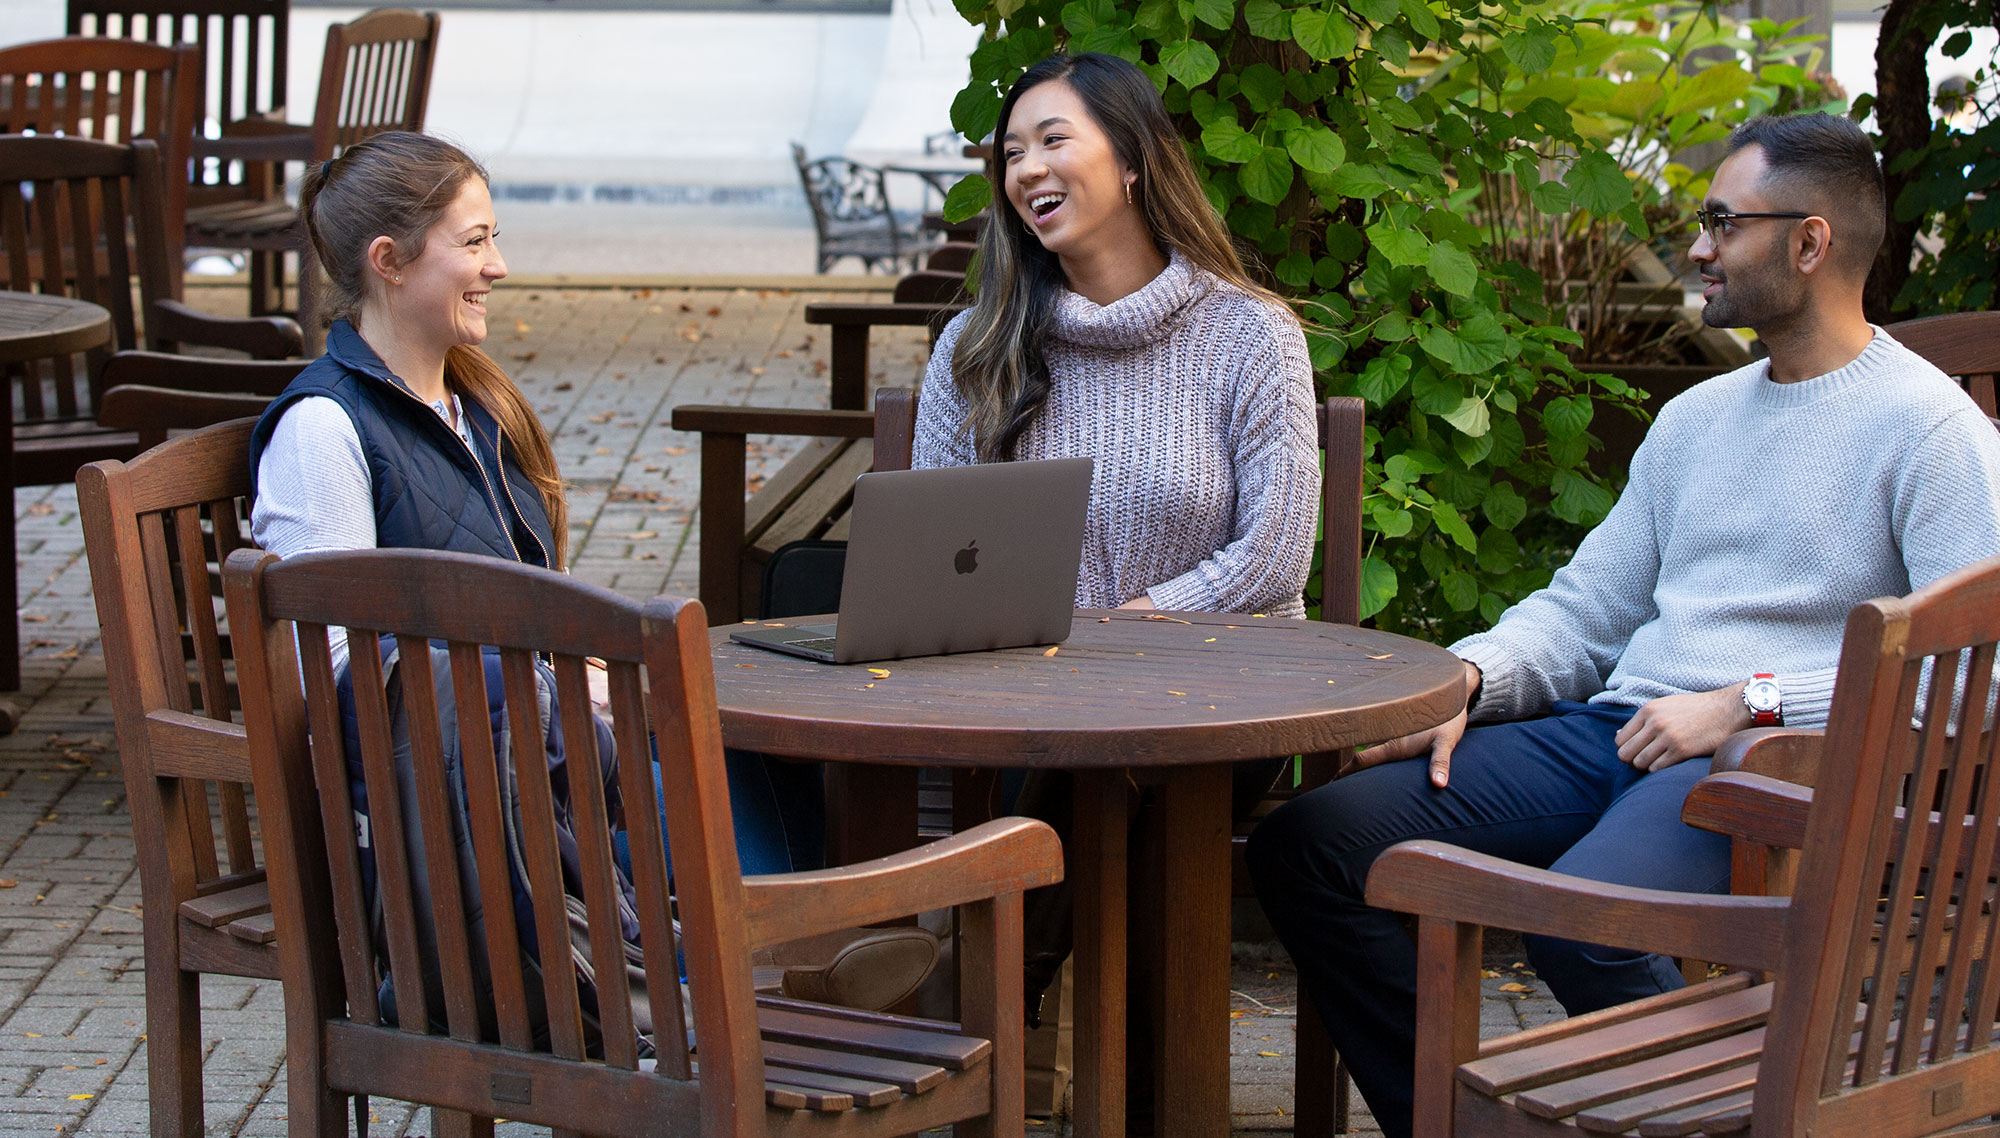 Three Penn State College of Medicine students are seen sitting in an outdoor courtyard, laughing together. A laptop is open on a table in front of them.